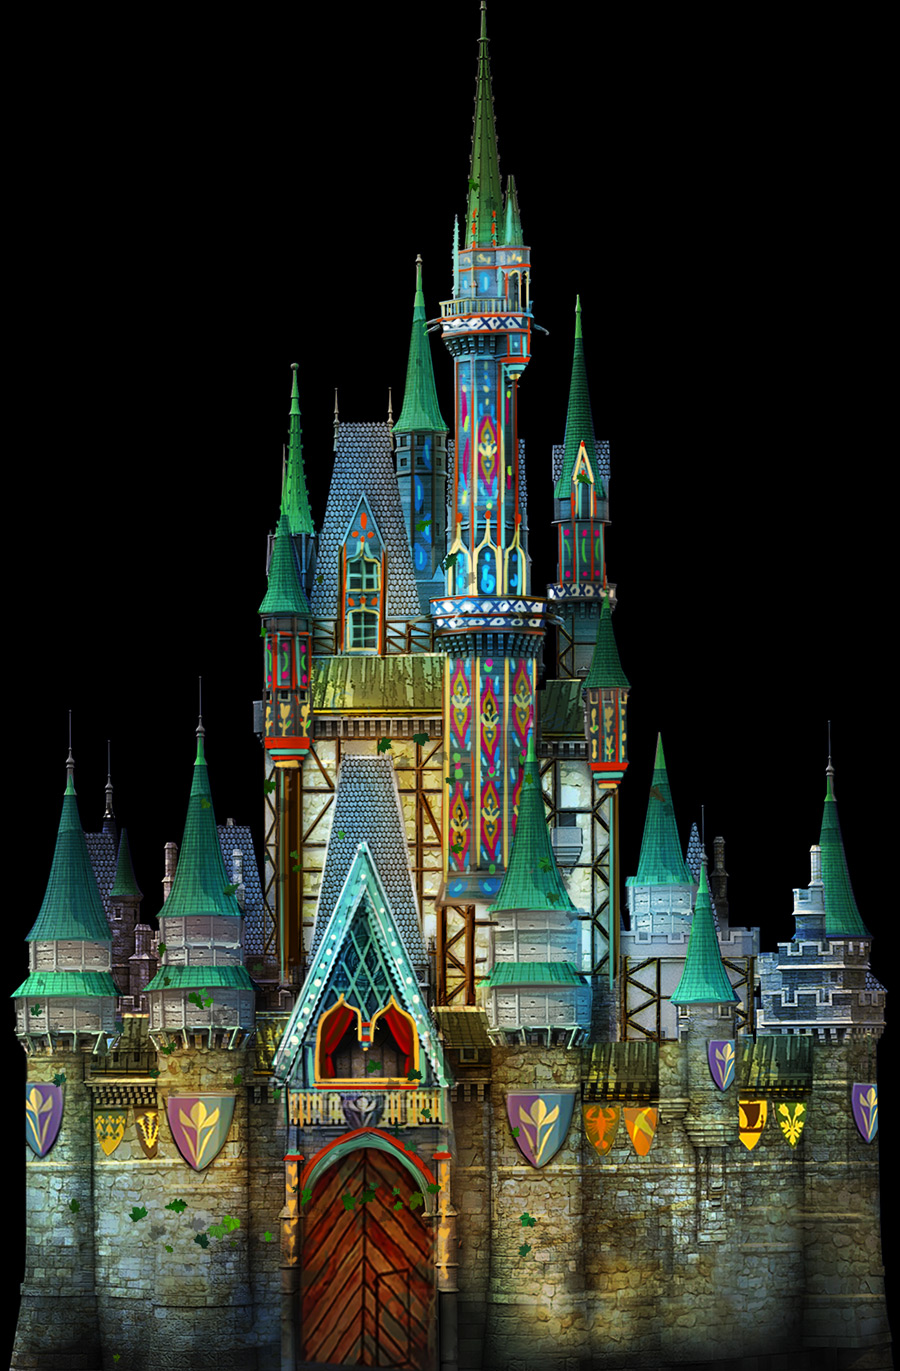 Cinderella Castle Tranforms into Arendelle